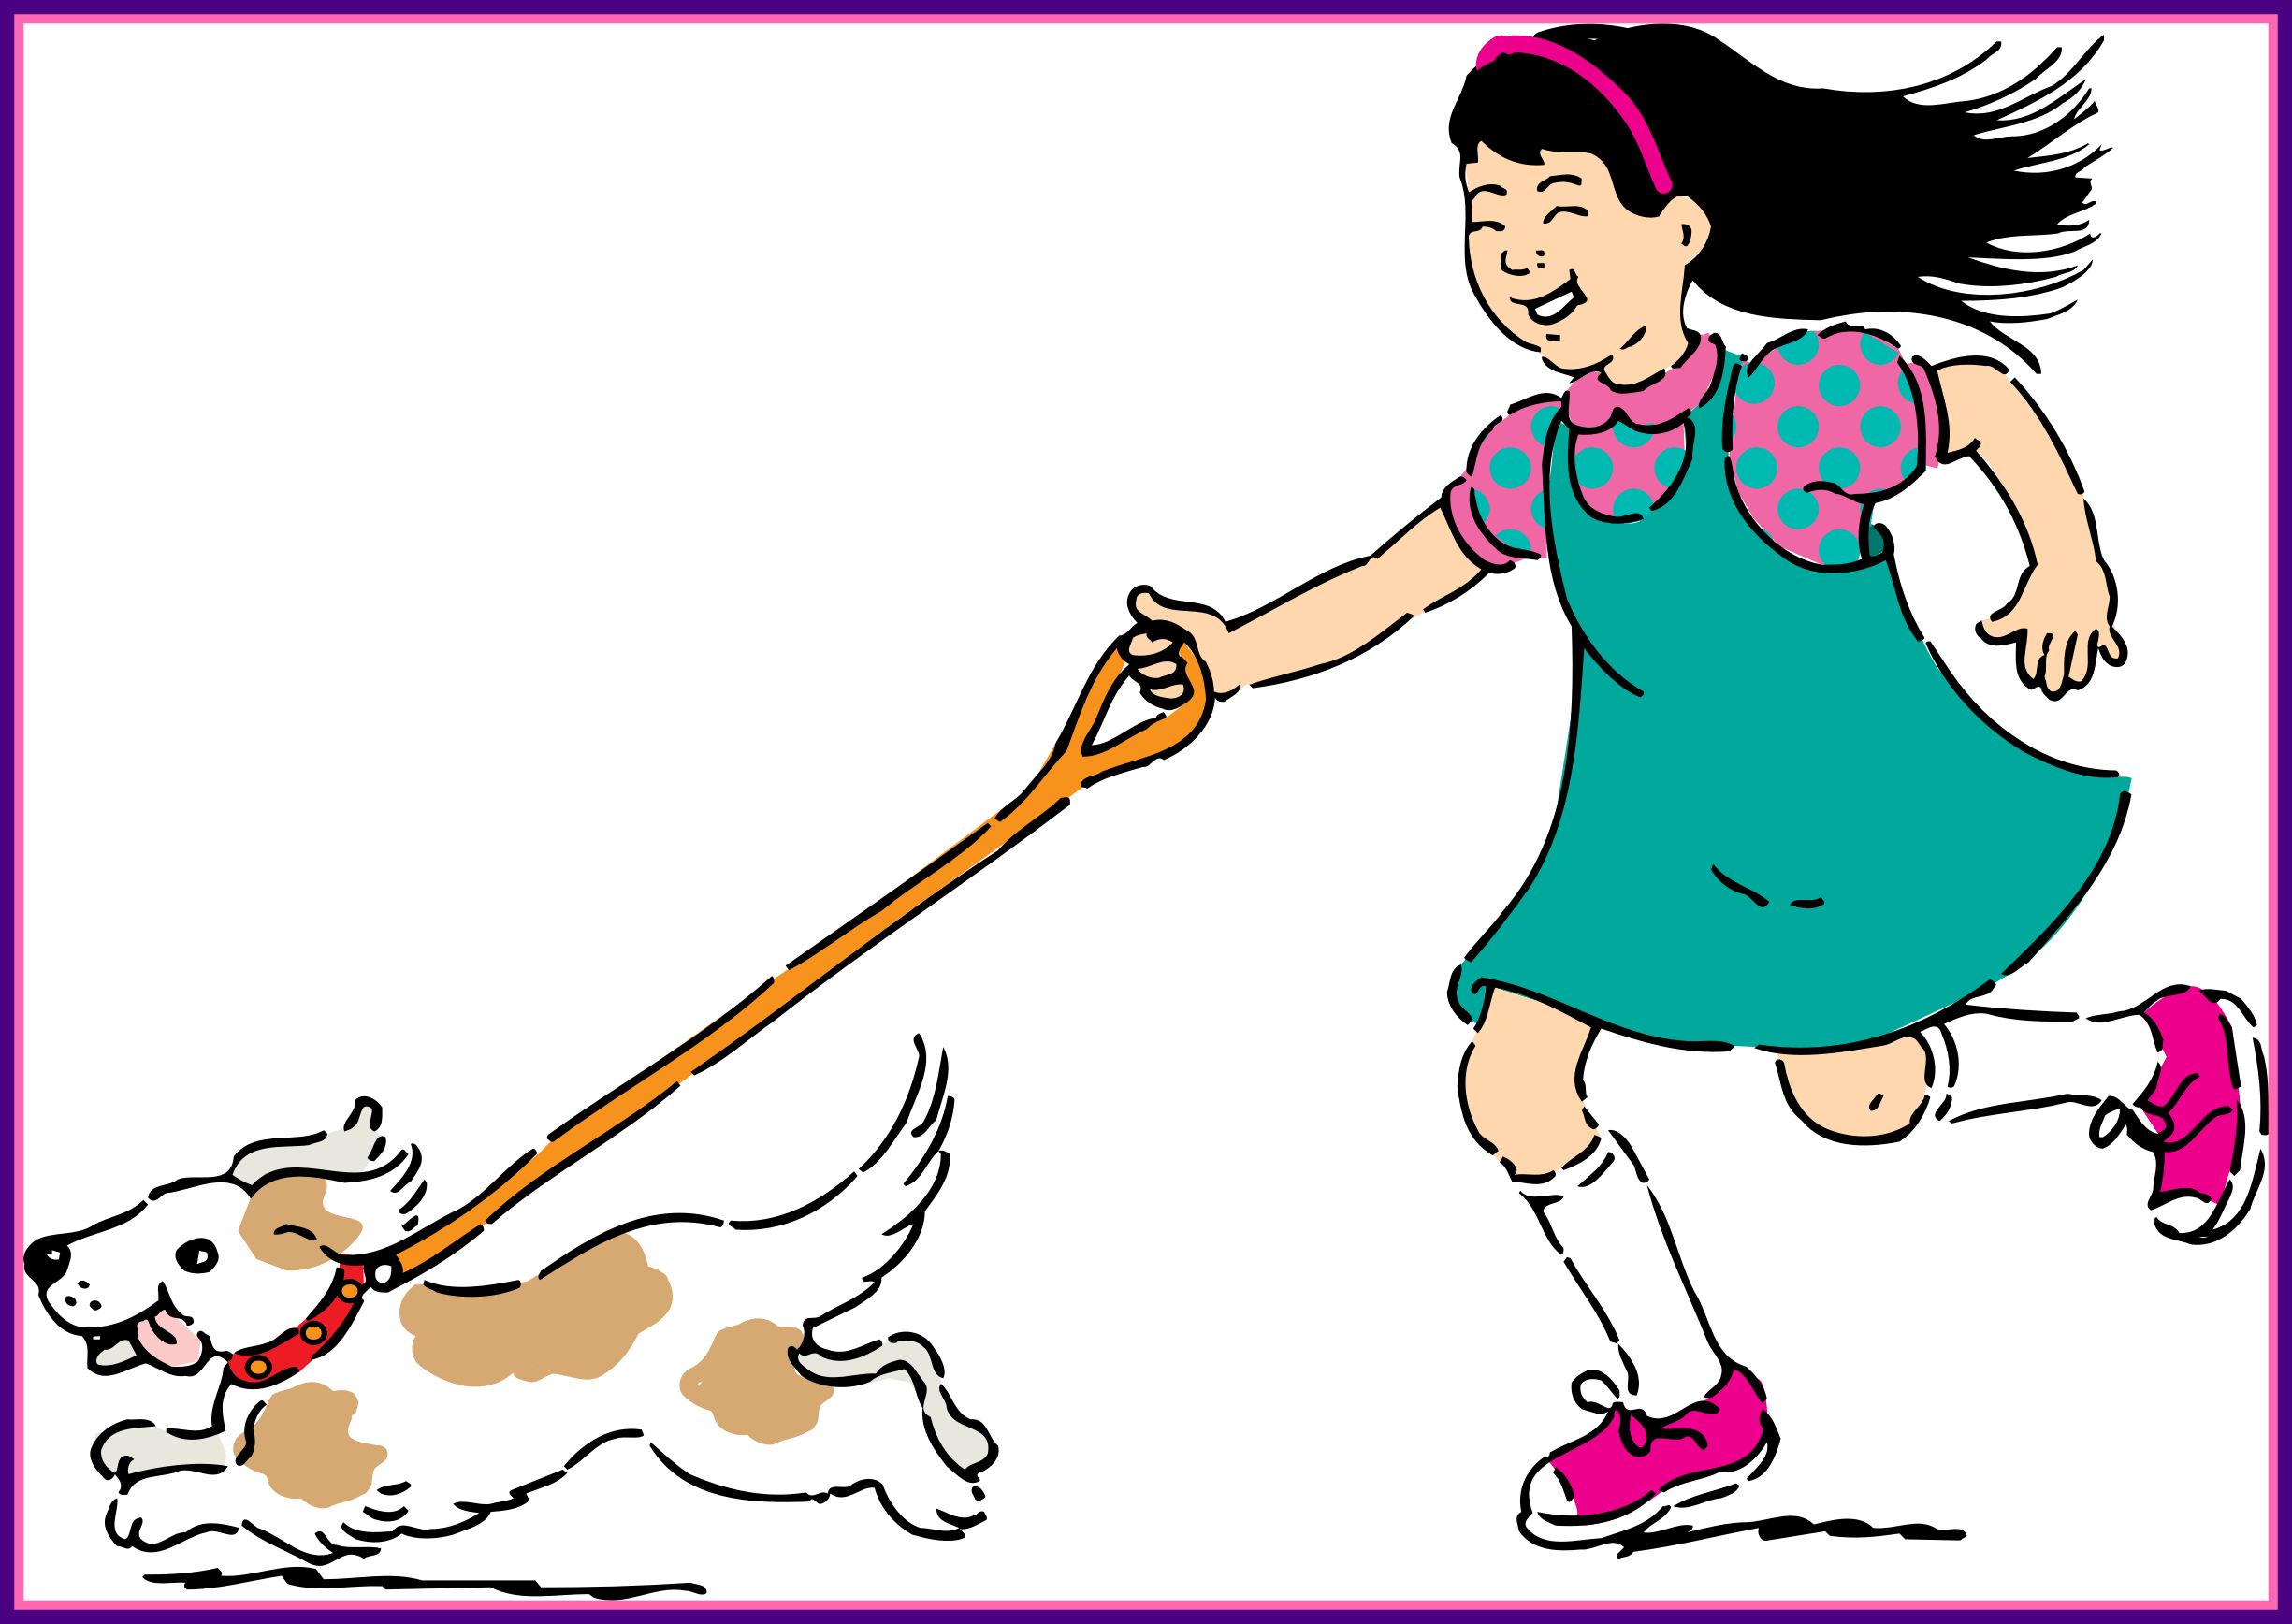 Walk the dog clipart clip freeuse stock Fascinating Clipart Walking Dog For Cartoon Girl Style And Gif ... clip freeuse stock